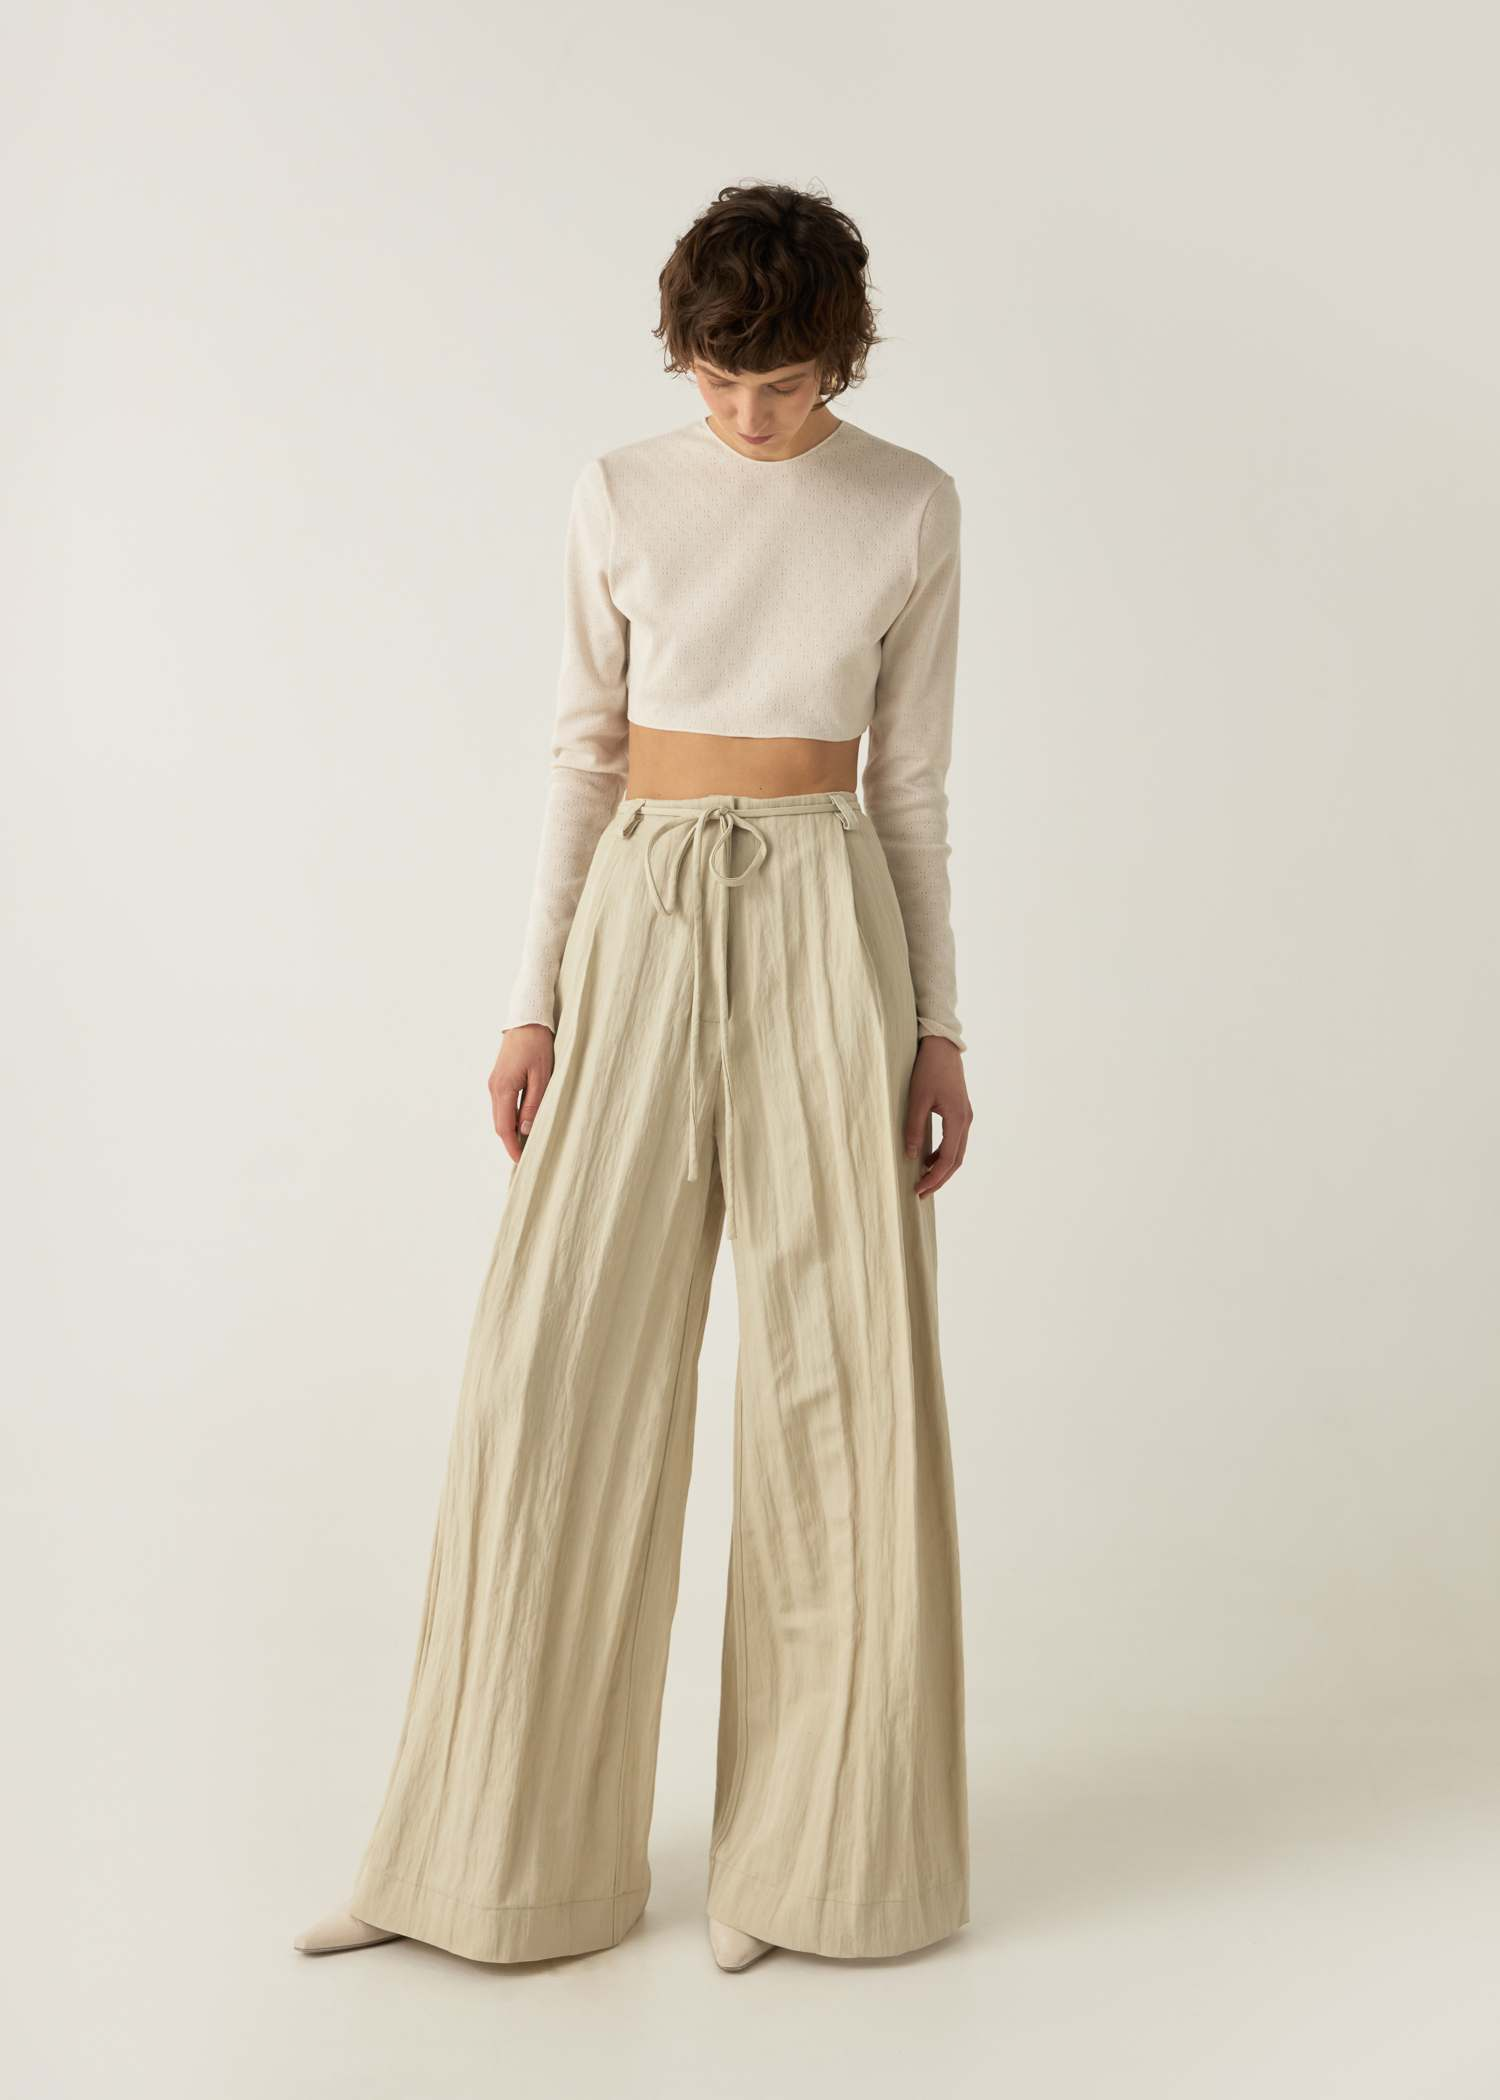 Palazzo trousers by My812, available on my812.ru for $290 Kendall Jenner Pants Exact Product